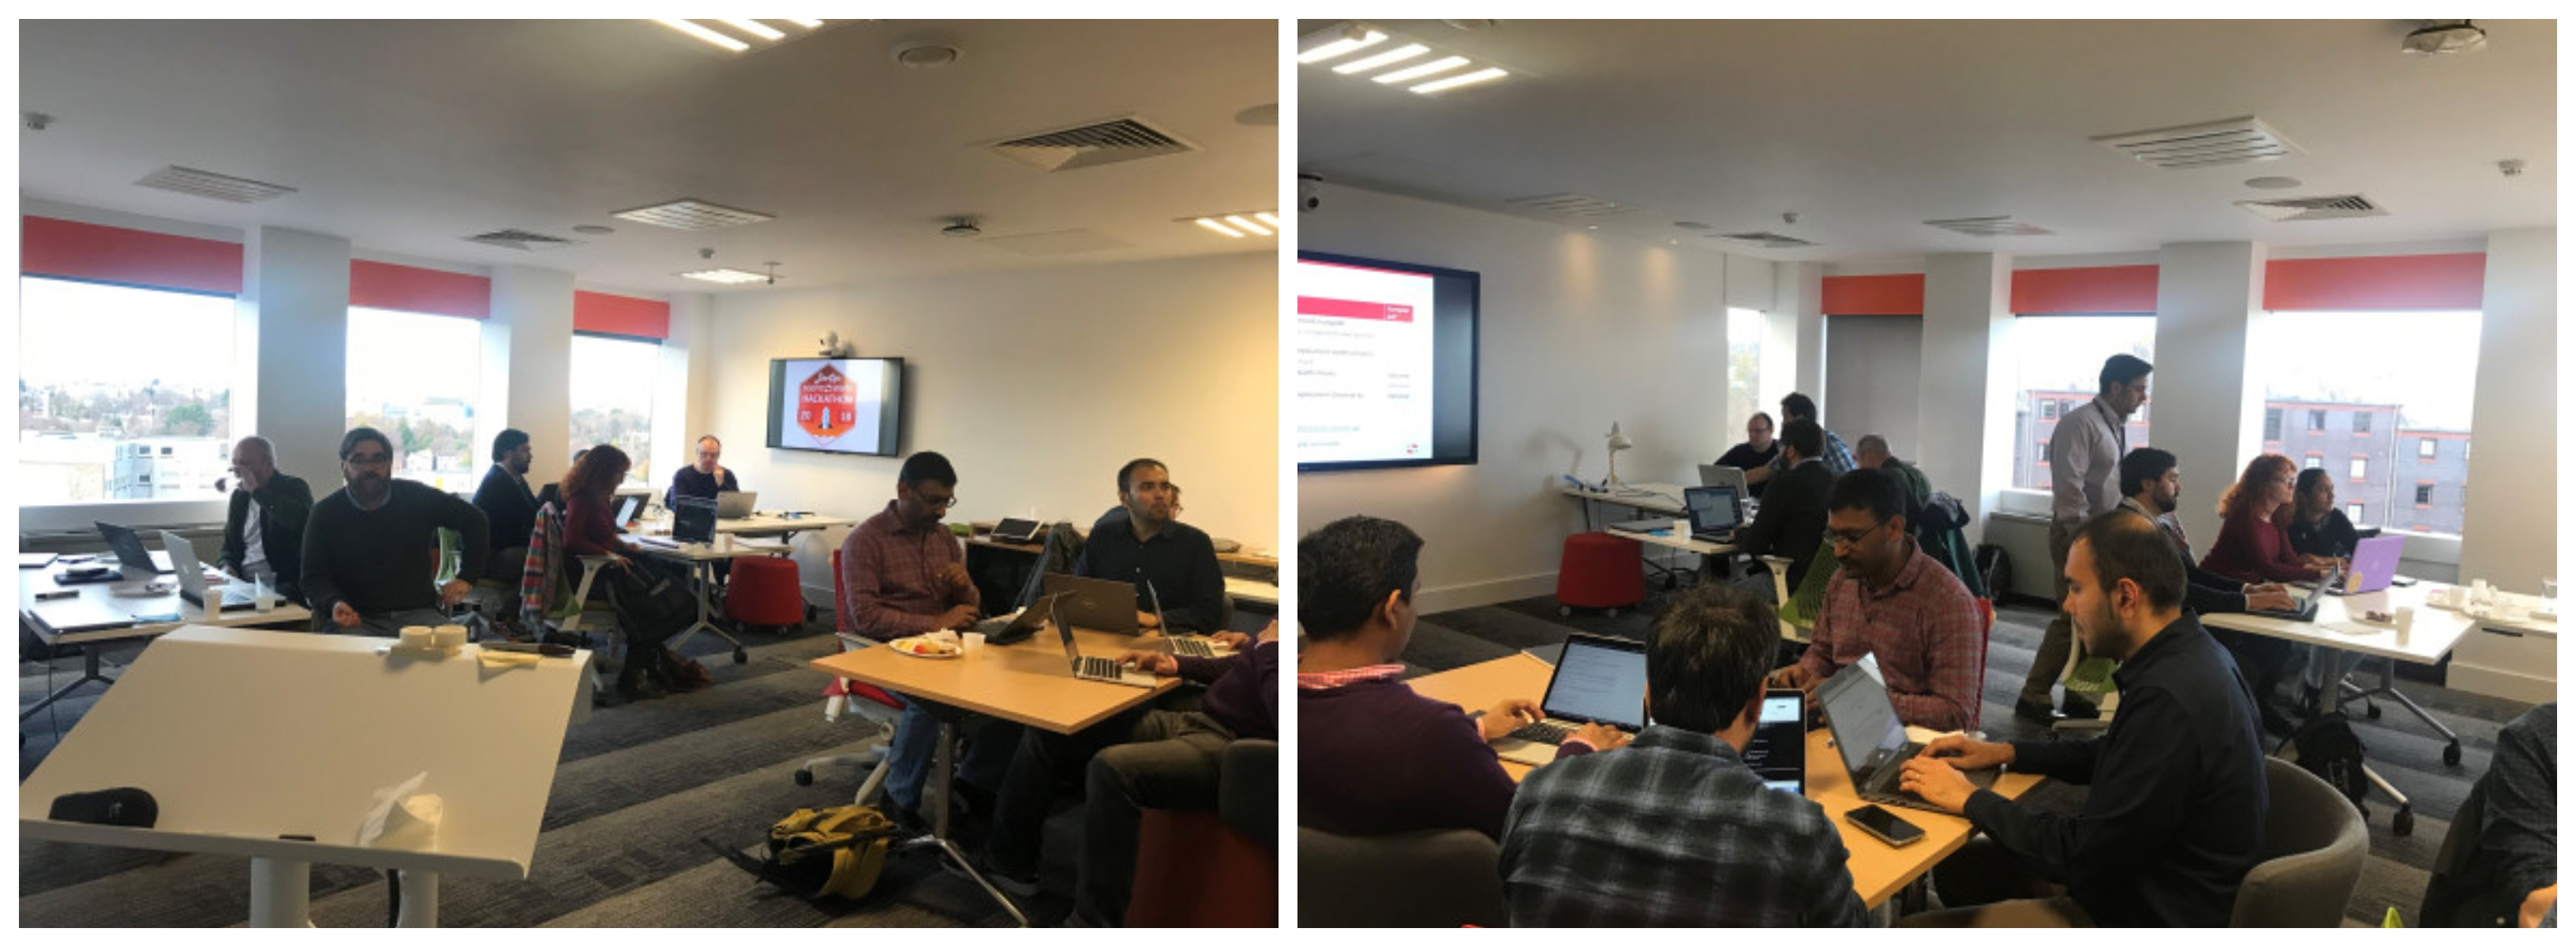 Photo collage of The Scottish Government Department of Agriculture and the Rural Economy (ARE) DevOps hackathon in the Sopra Steria Edinburgh DigiLab